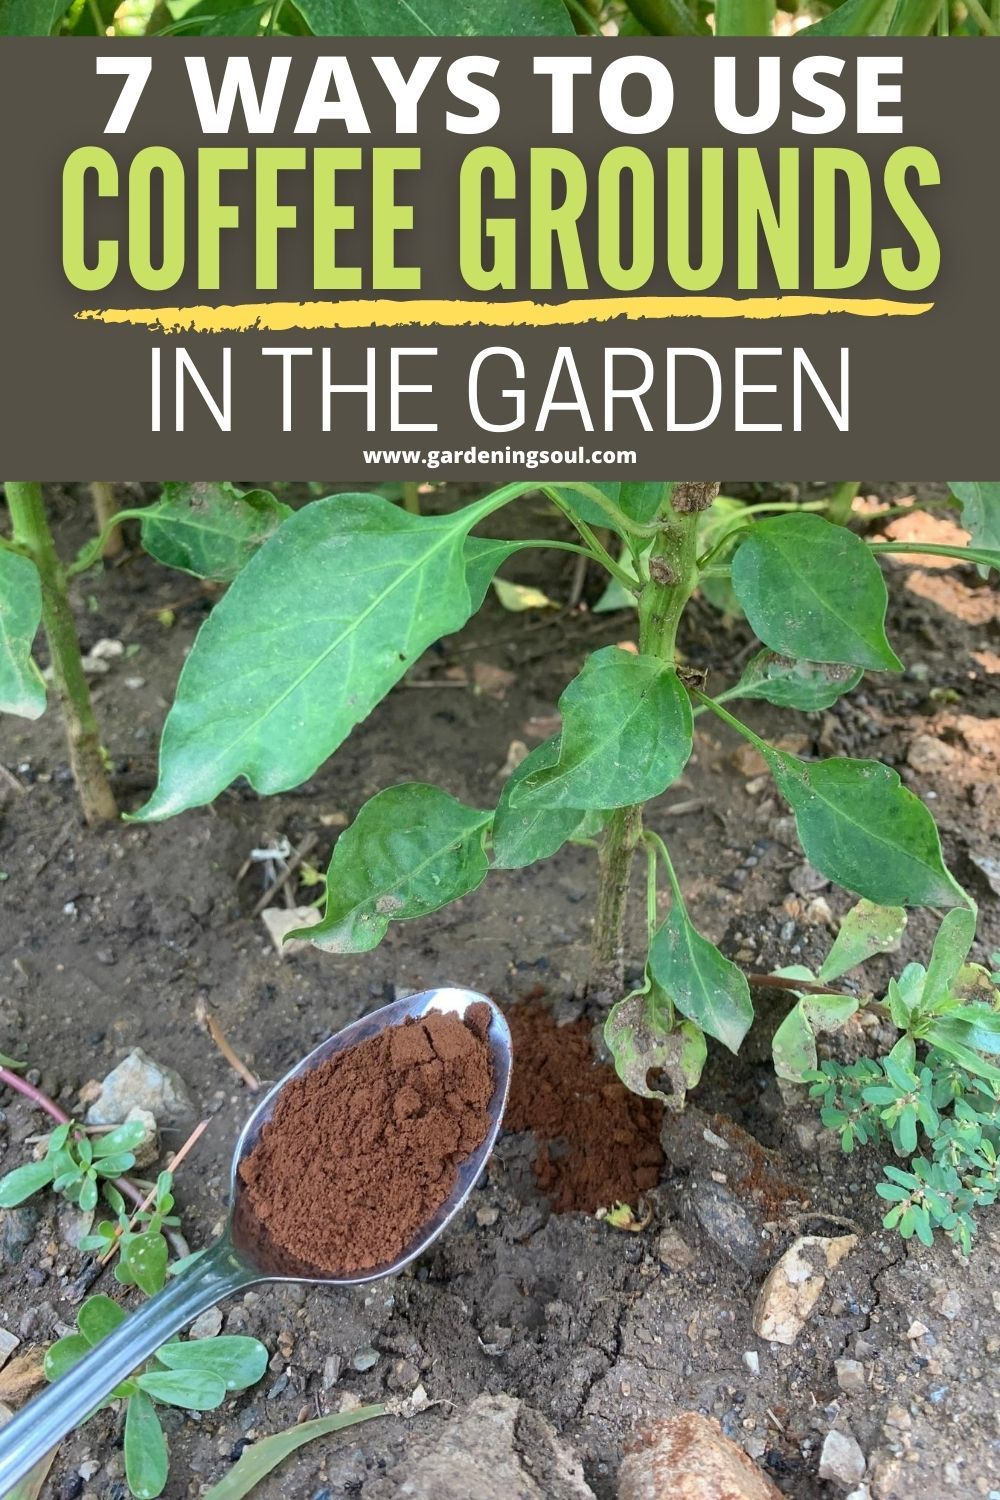 7 Ways To Use Coffee Grounds In The Garden Coffee Grounds Garden Organic Gardening Gardening Tips